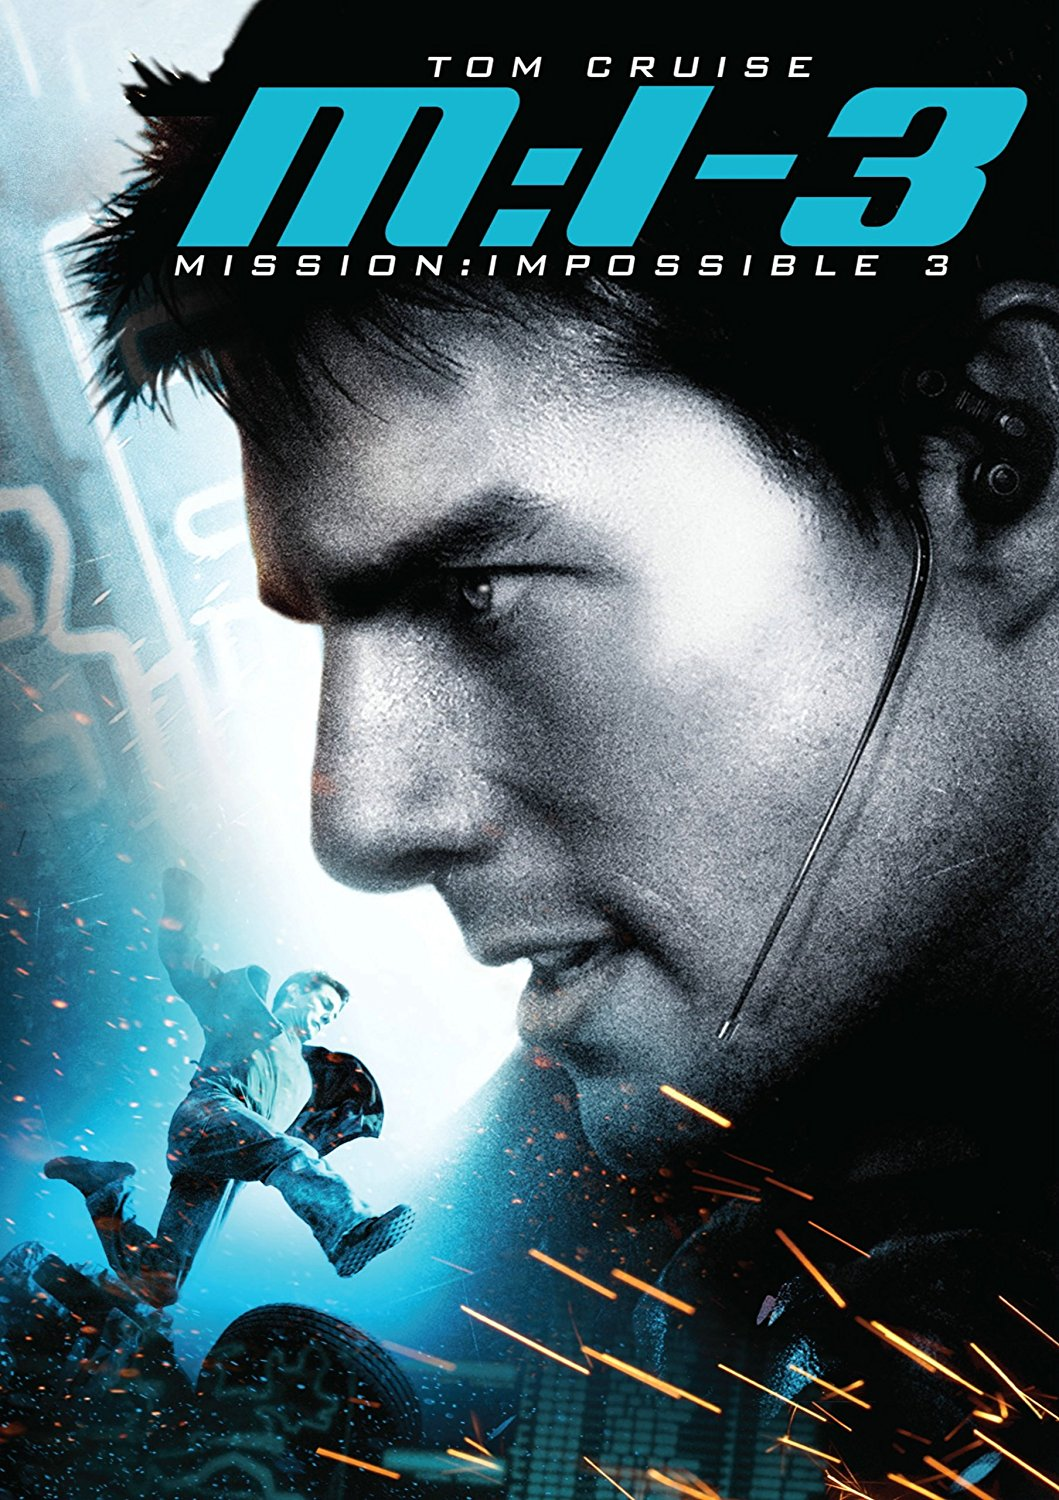 Mission: Impossible III (2006) - Directed by: J.J. AbramsStarring: Tom Cruise, Phillip Seymore Hoffman, Michelle Monaghan, Ving Rhames, Billy Crudup, Laurence Fishburne, Kerri Russell, Maggie Q, Simon Pegg, Jonathan Rhys MeyersRated: PG13Running Time: 2h 6mTMM Score: 4 stars out of 5STRENGTHS: Set Pieces, VillainWEAKNESSES: A Little Cheesy